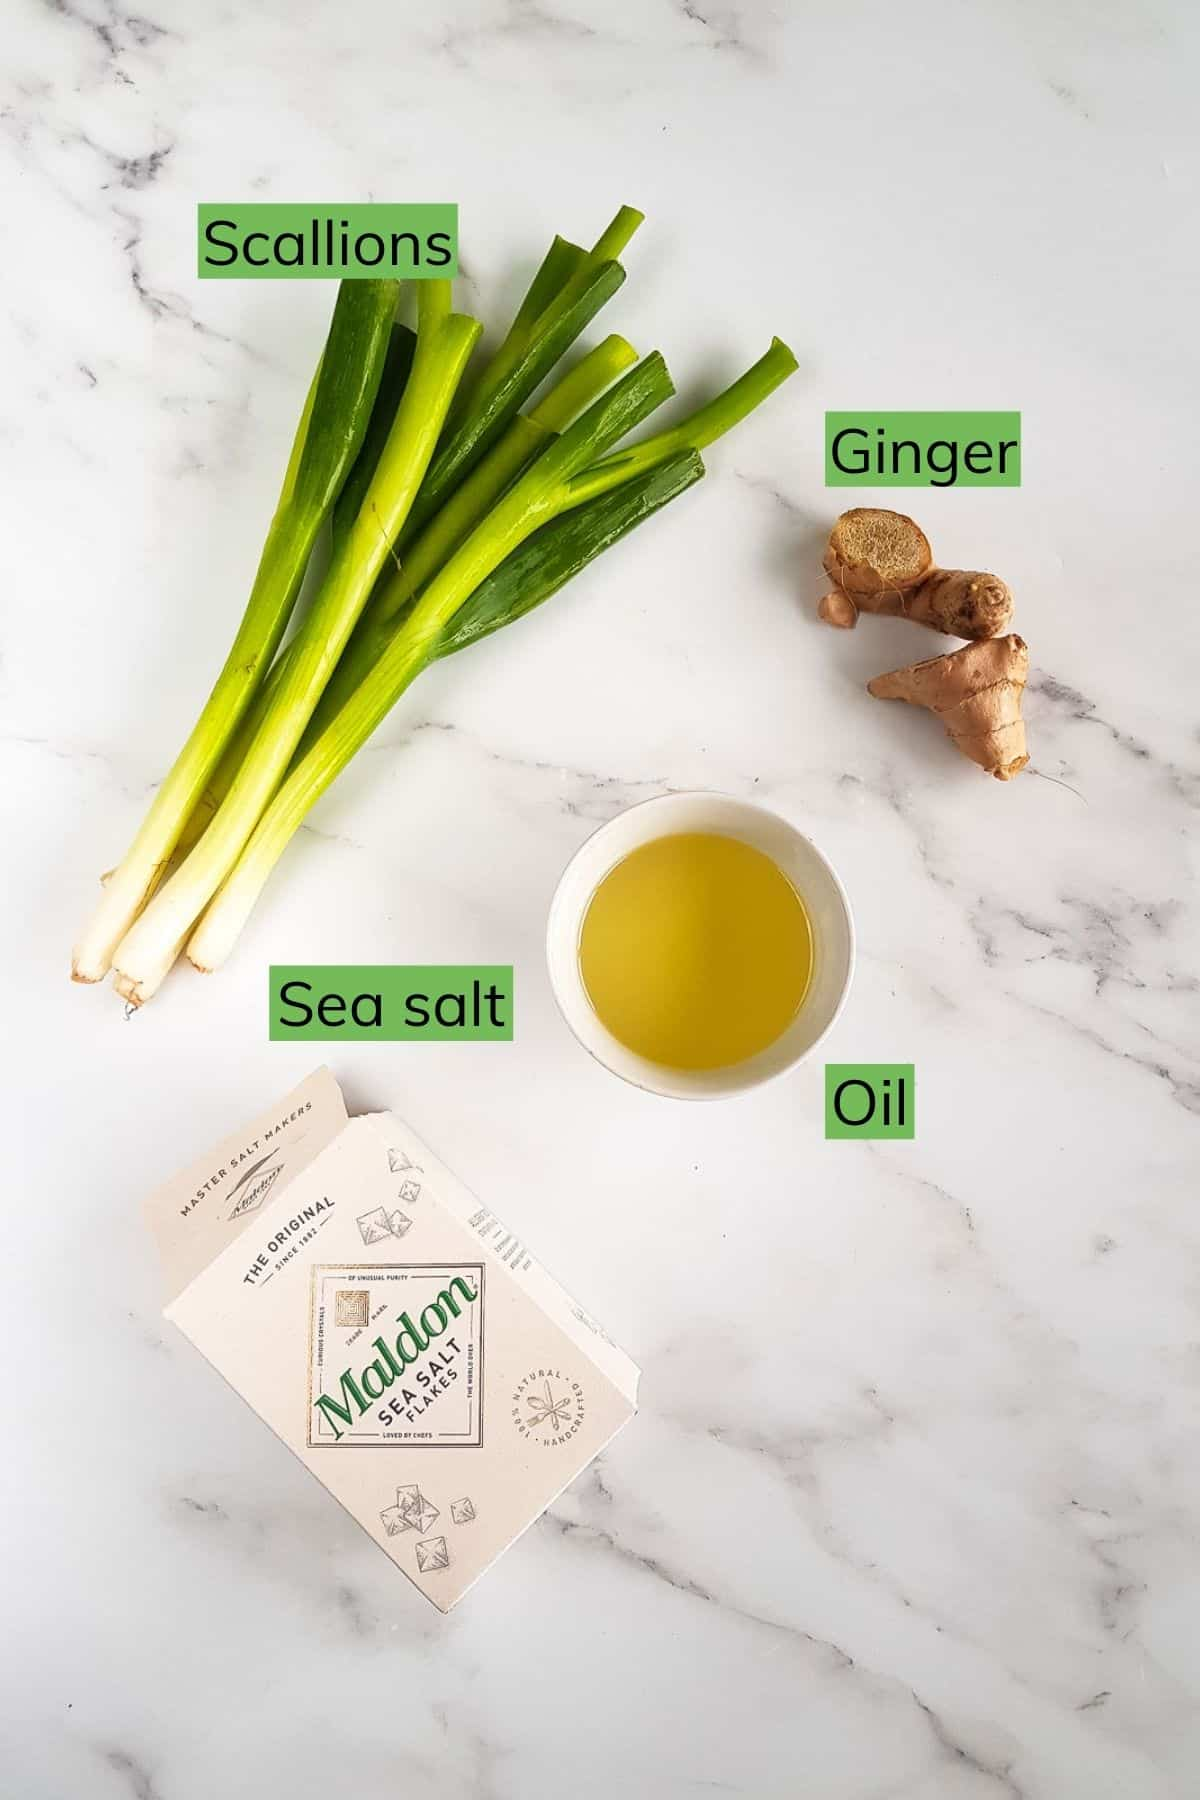 Ingredients needed to make ginger scallion sauce on a table.